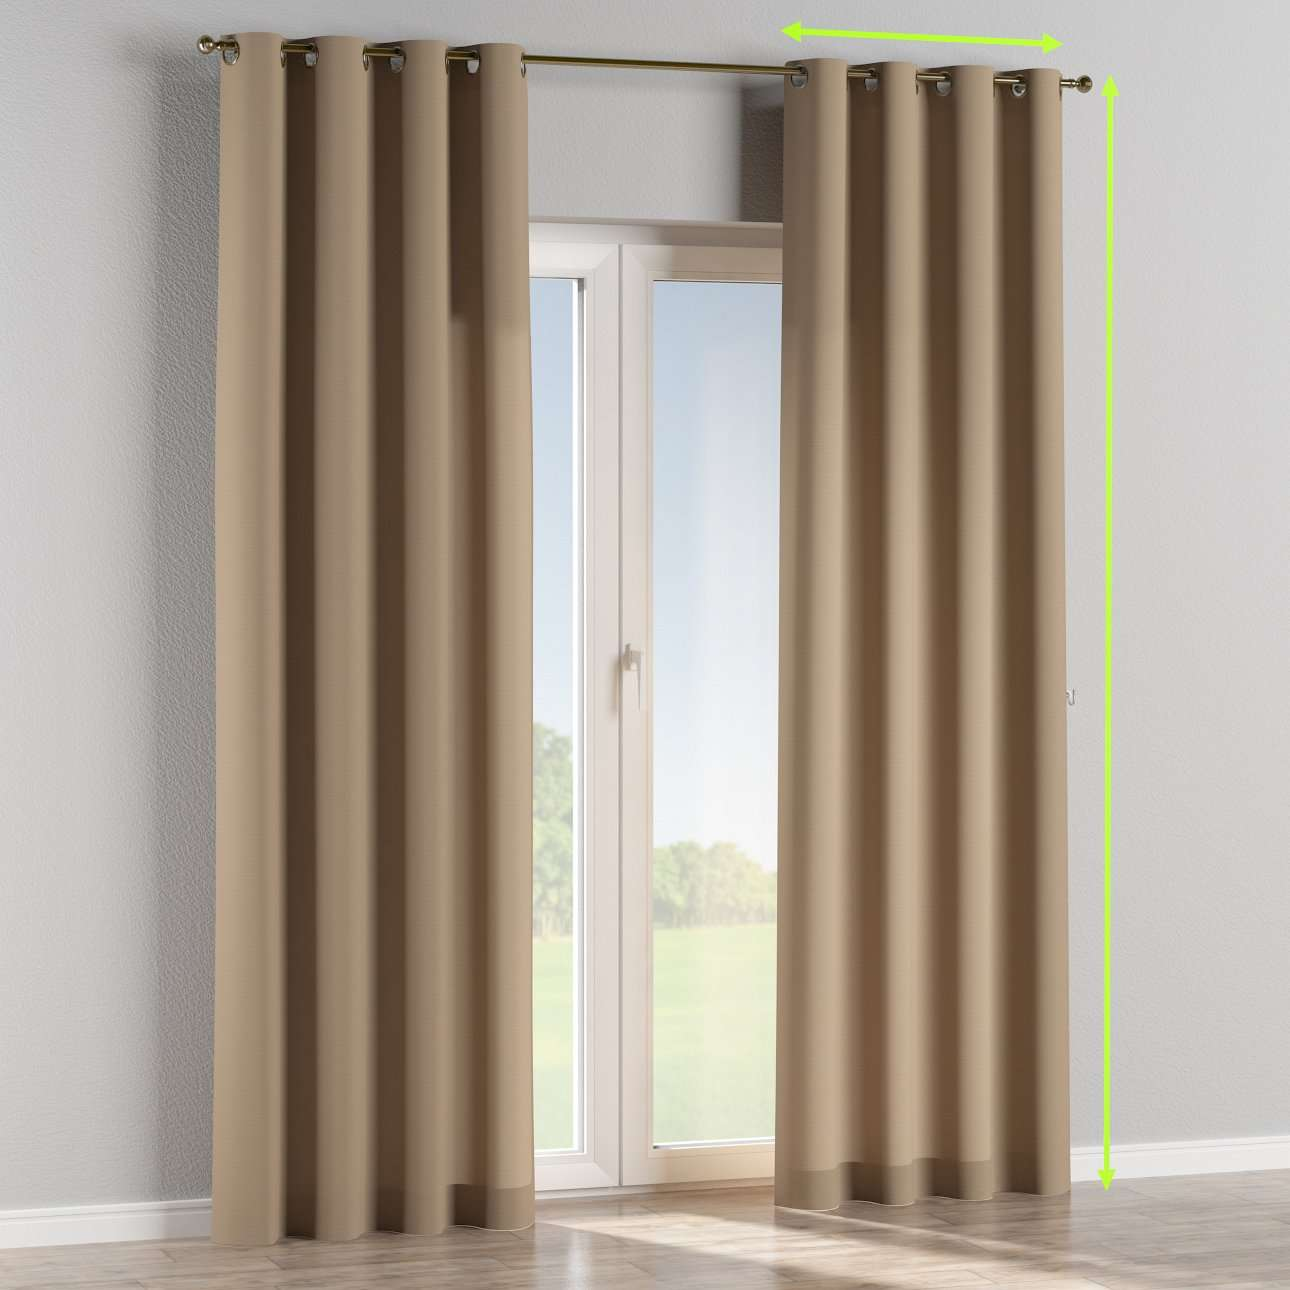 Eyelet lined curtains in collection Cotton Panama, fabric: 702-28